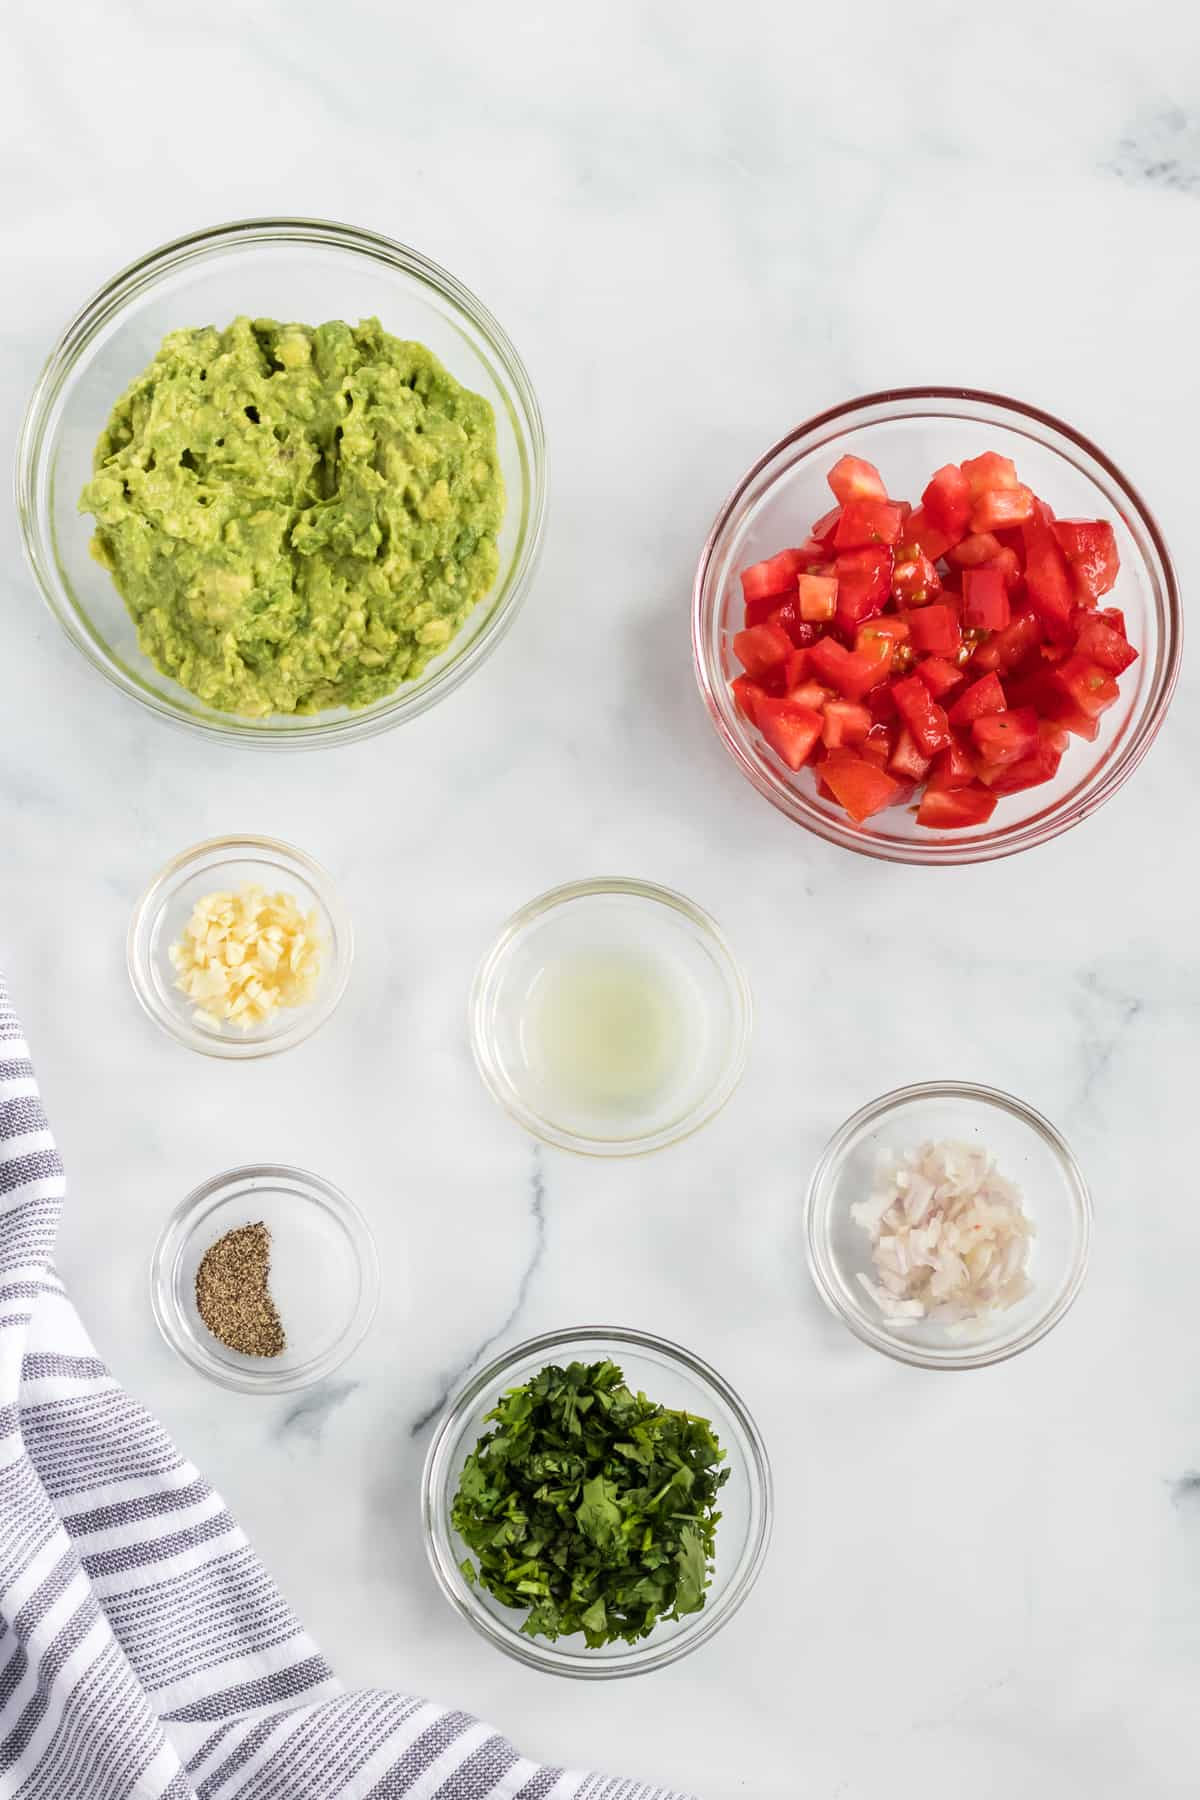 ingredients for guacamole with tomatoes in individual glass bowls